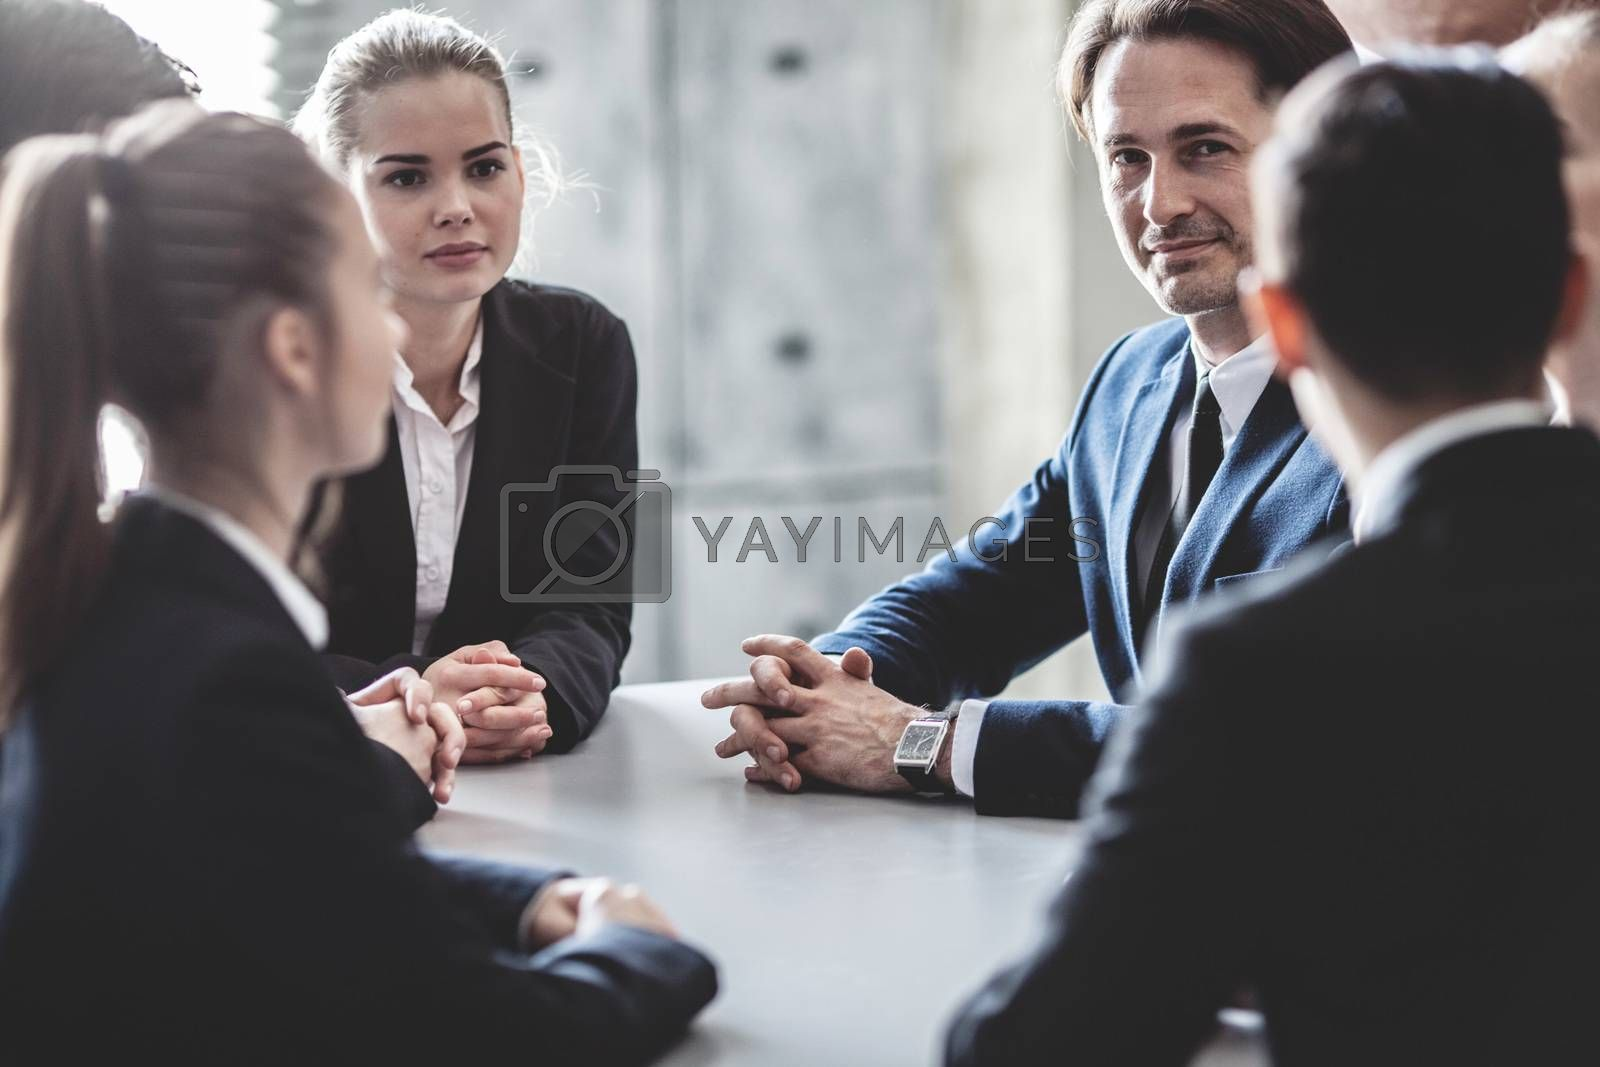 Group of business people working together at meeting in office